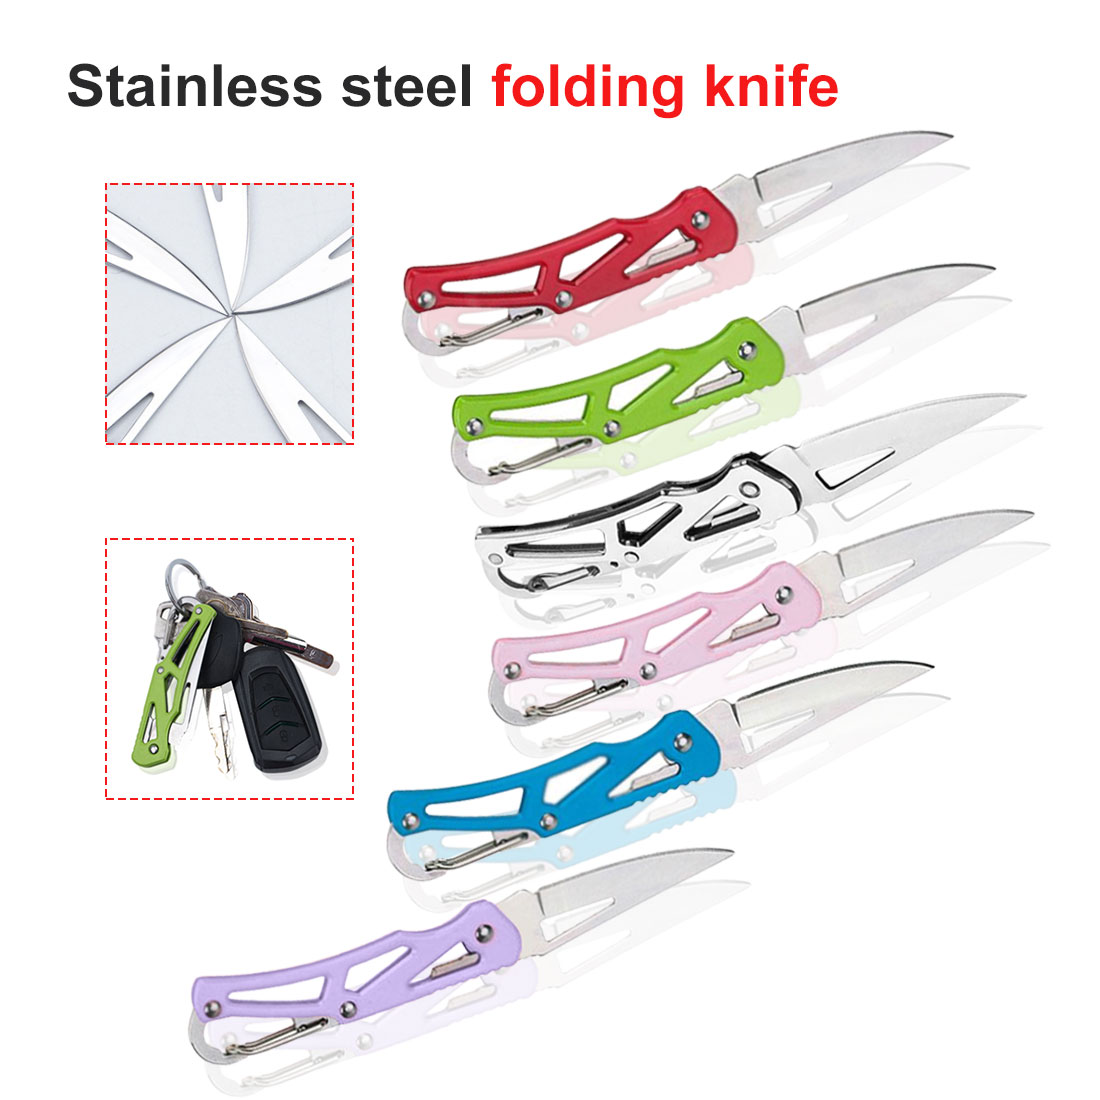 Outdoor Survival Tool  140mm Practical Camping Stainless Steel Foldable Pocket Knife Mini Portable Folding Knife Fruit Cutter